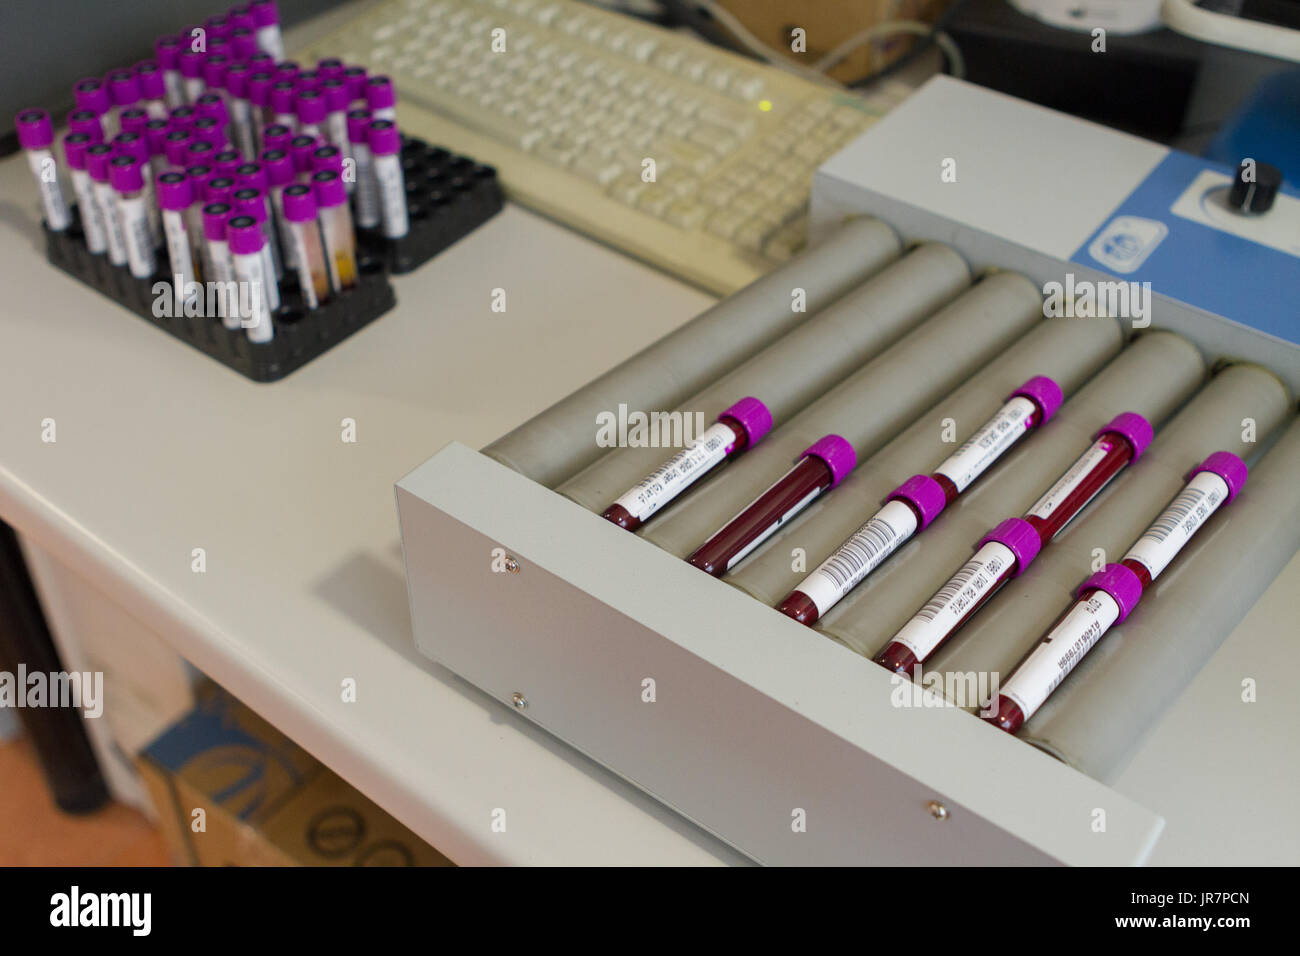 Zagreb, Croatia - June 14, 2017: Blood sample tubes ready for analysis - Stock Image